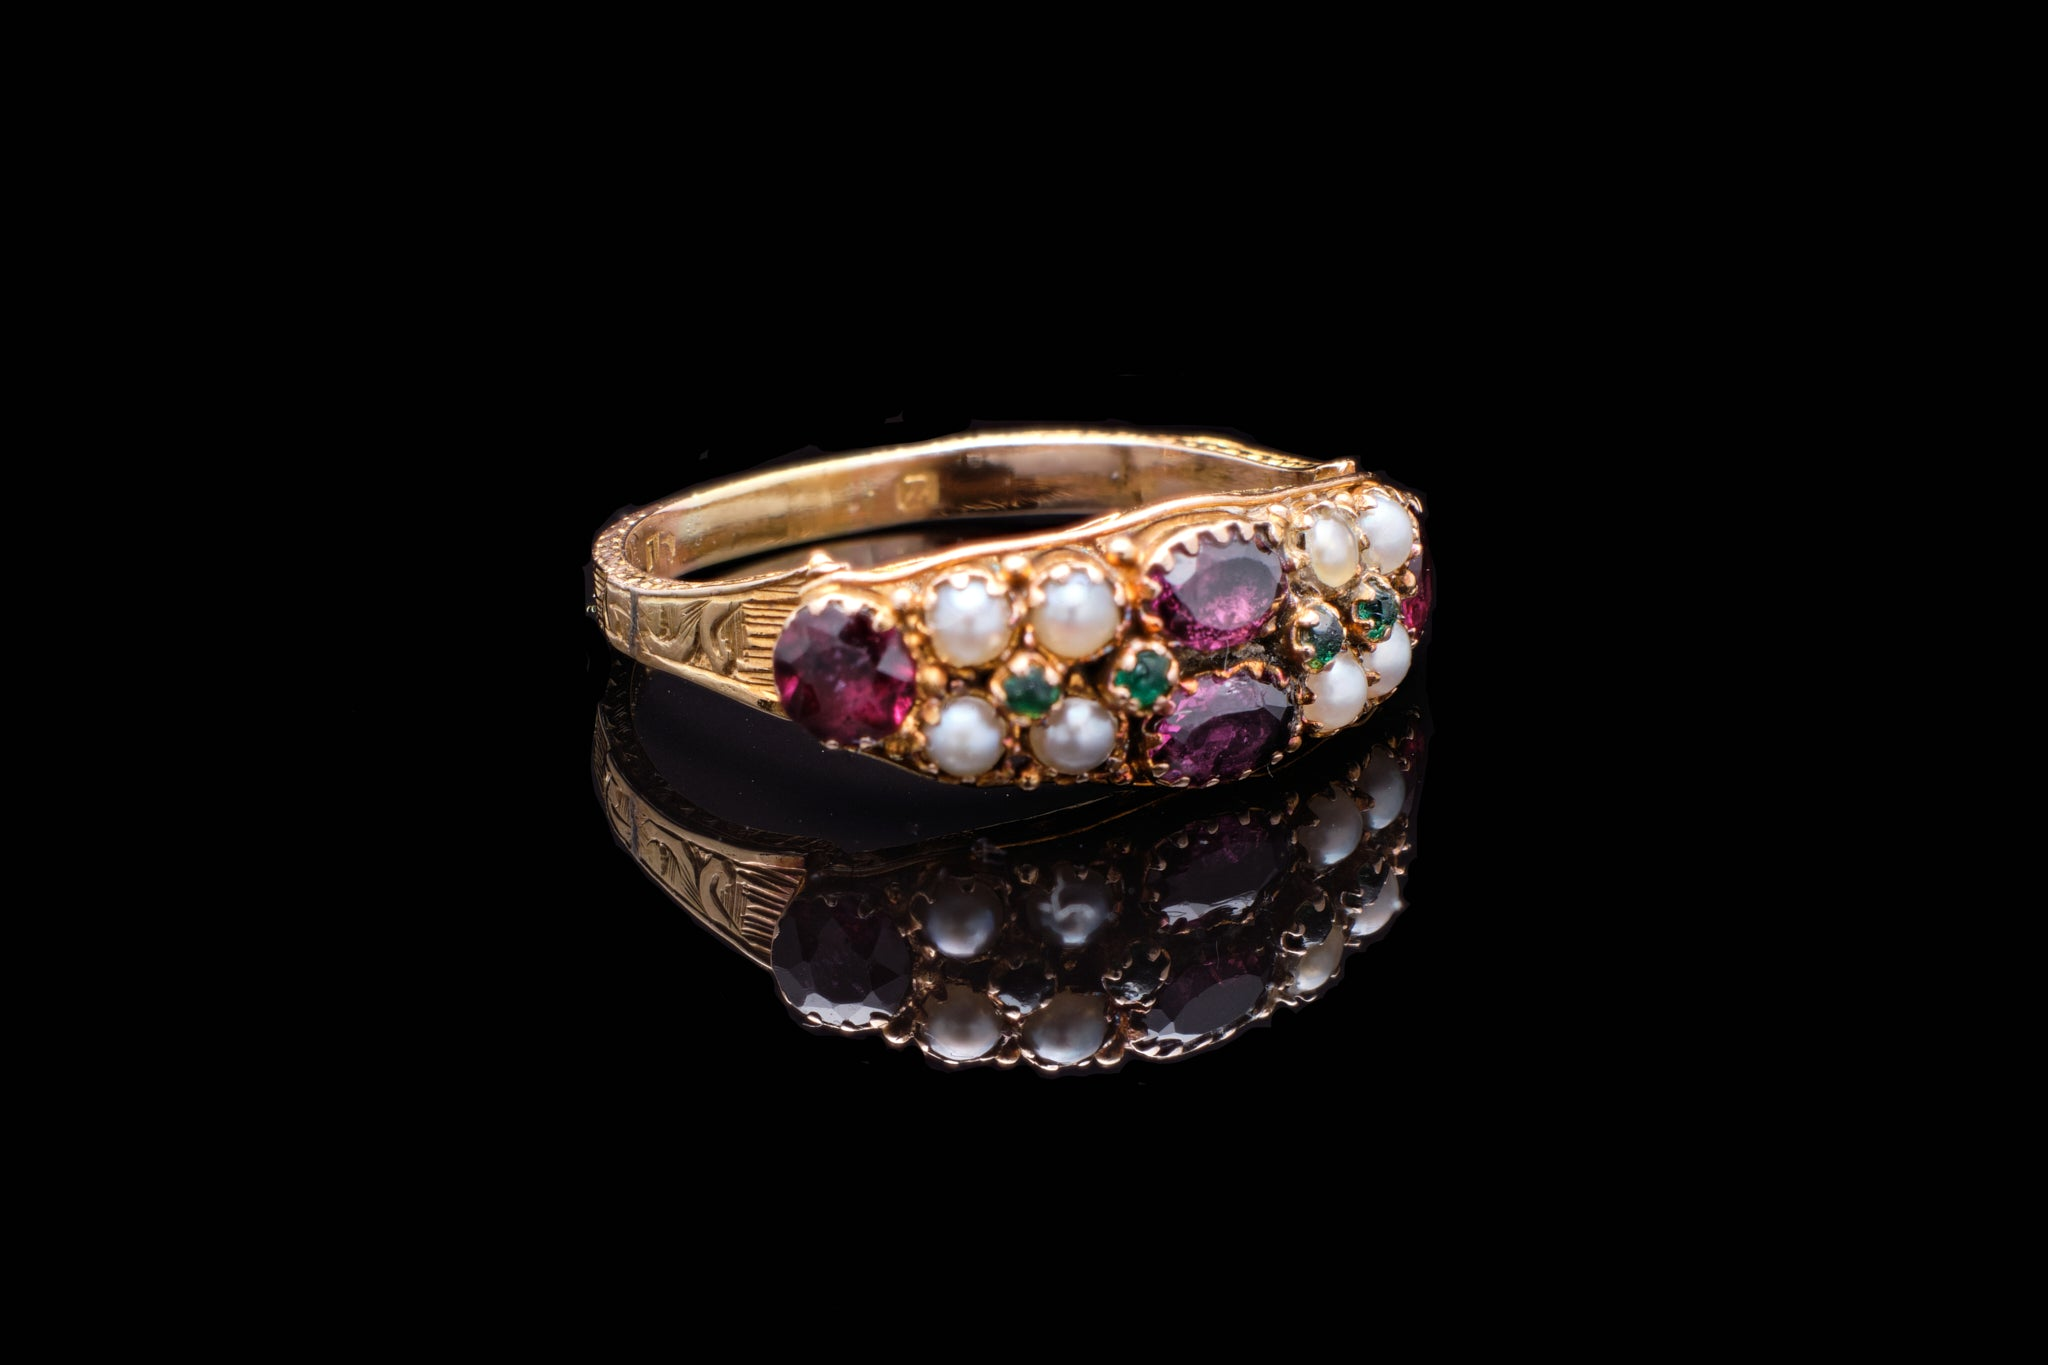 Early Victorian 15ct Gold Ring with Almadine Garnets, Emeralds and Pearls  SOLD.